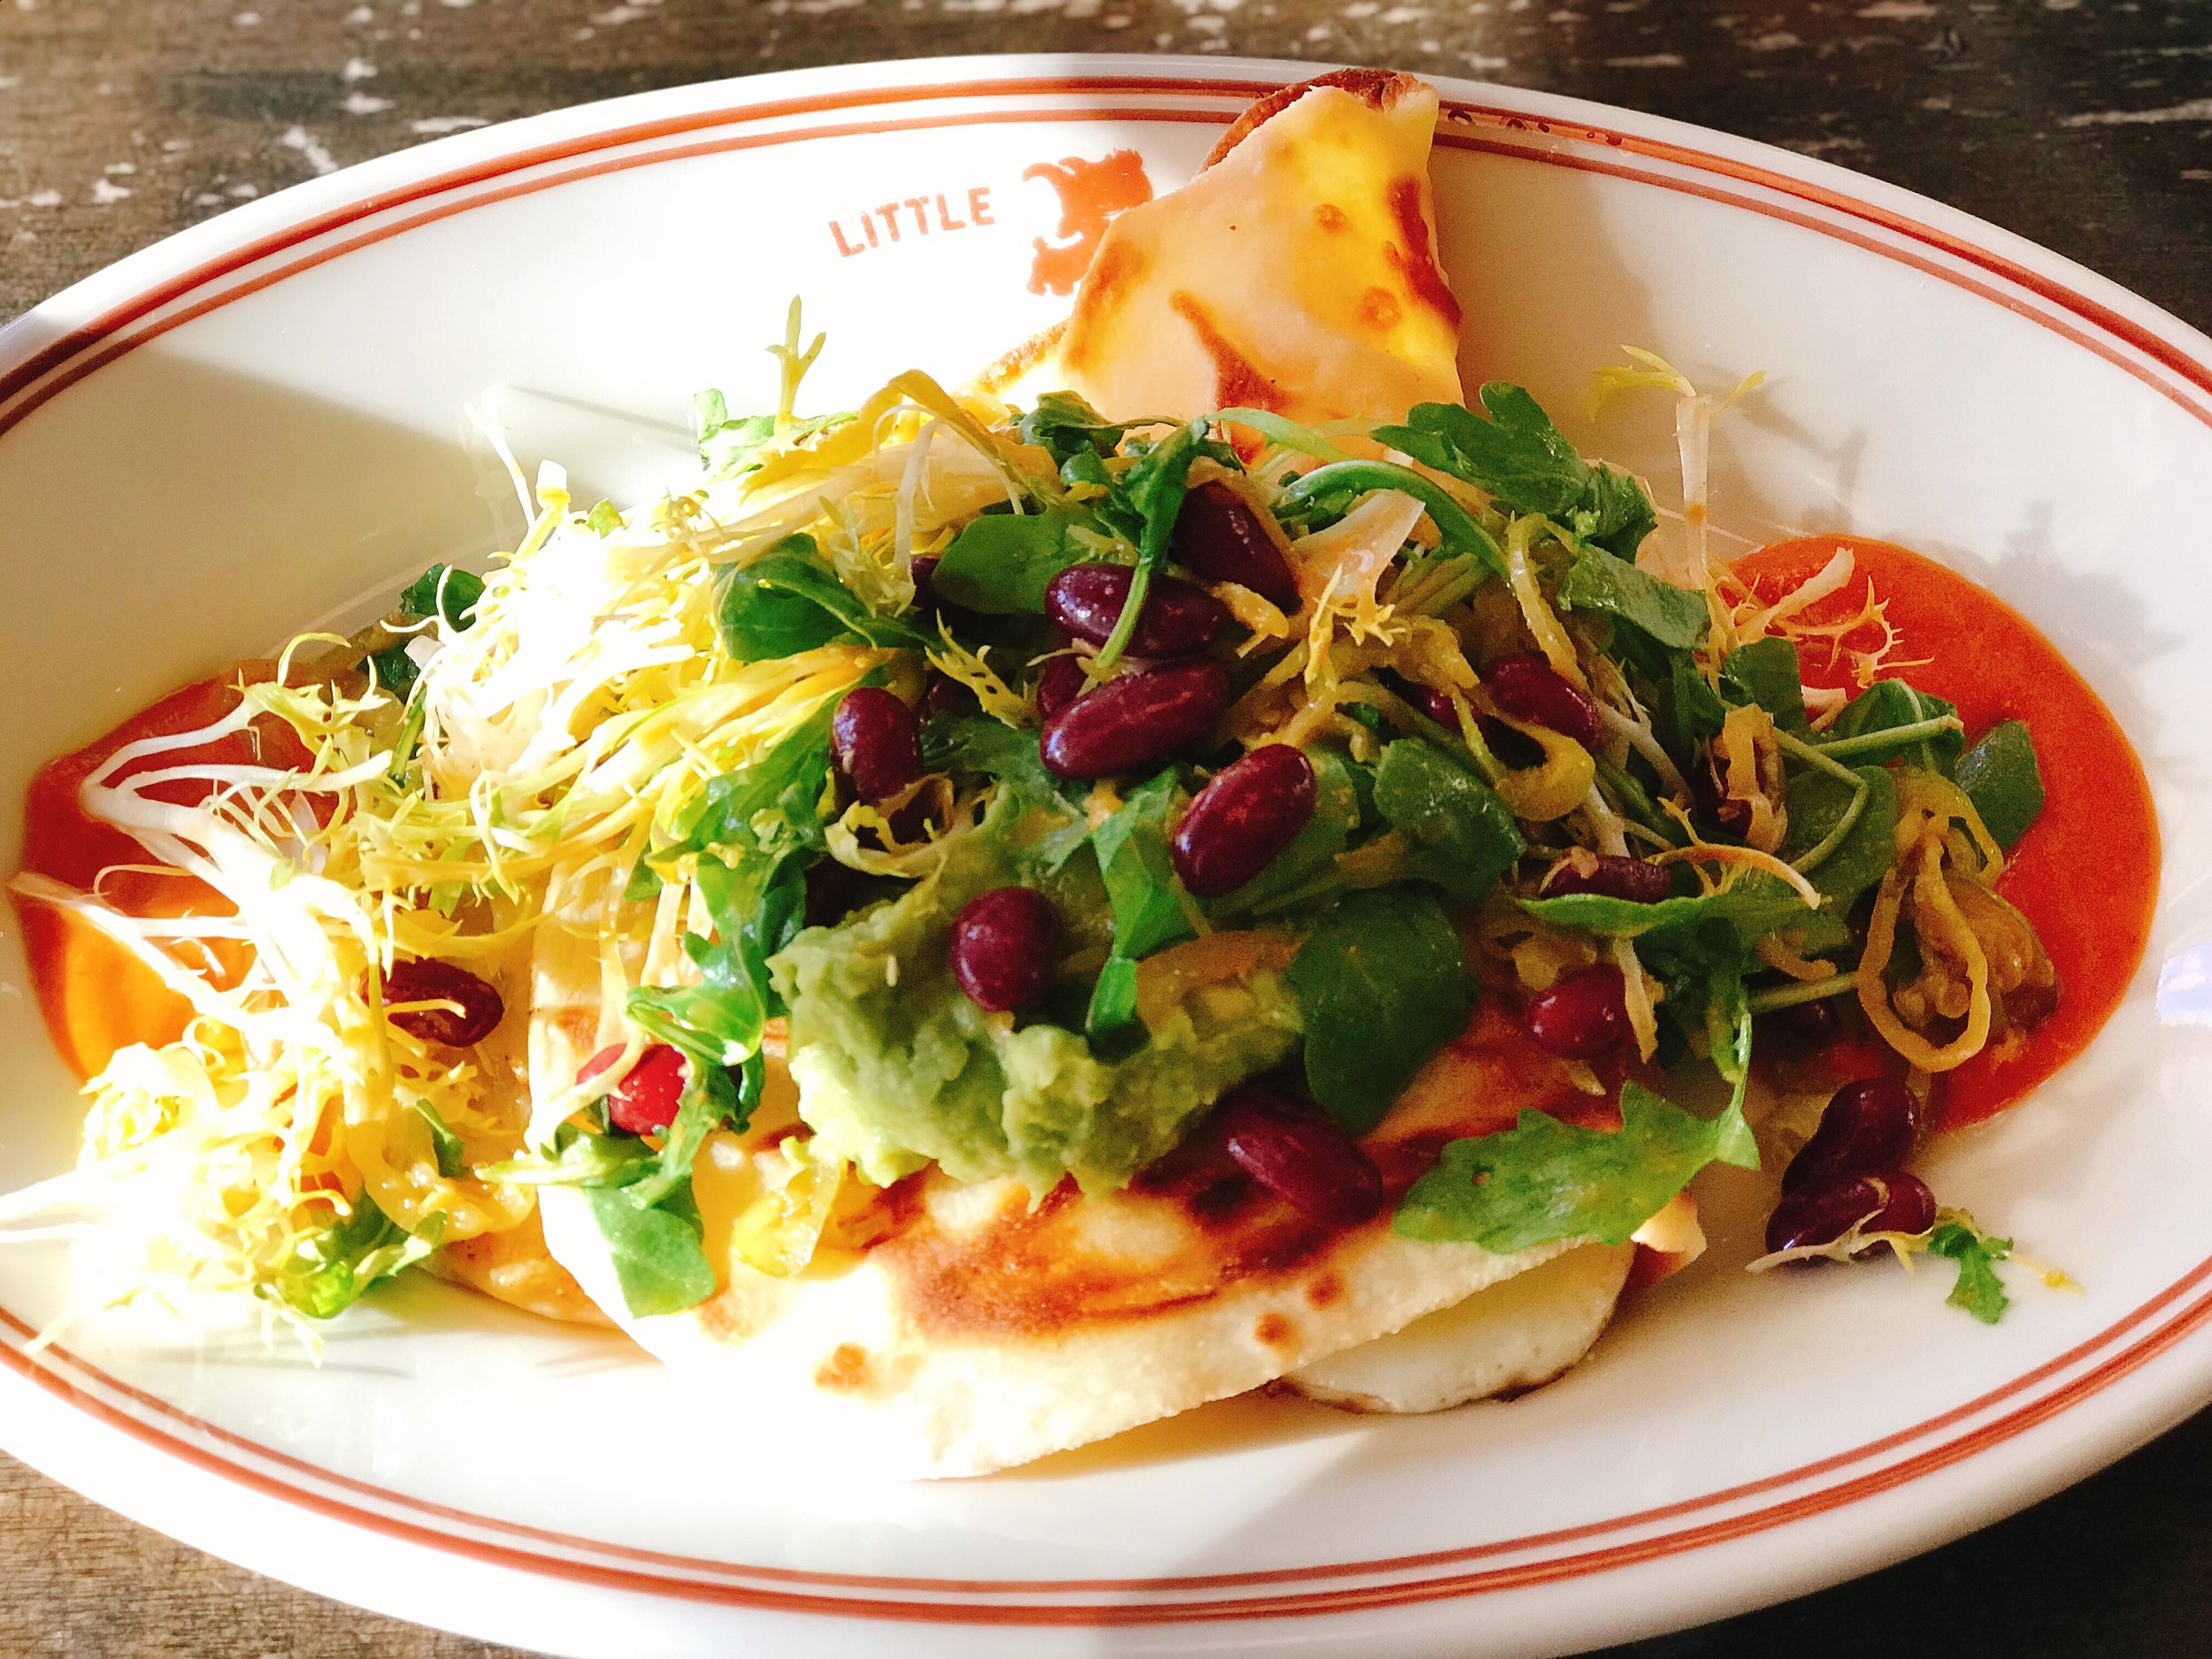 Parathas Burrito: Indian flatbread, chili pepper sauce, avocado-bean salad, sunny side eggs and mont amore cheese